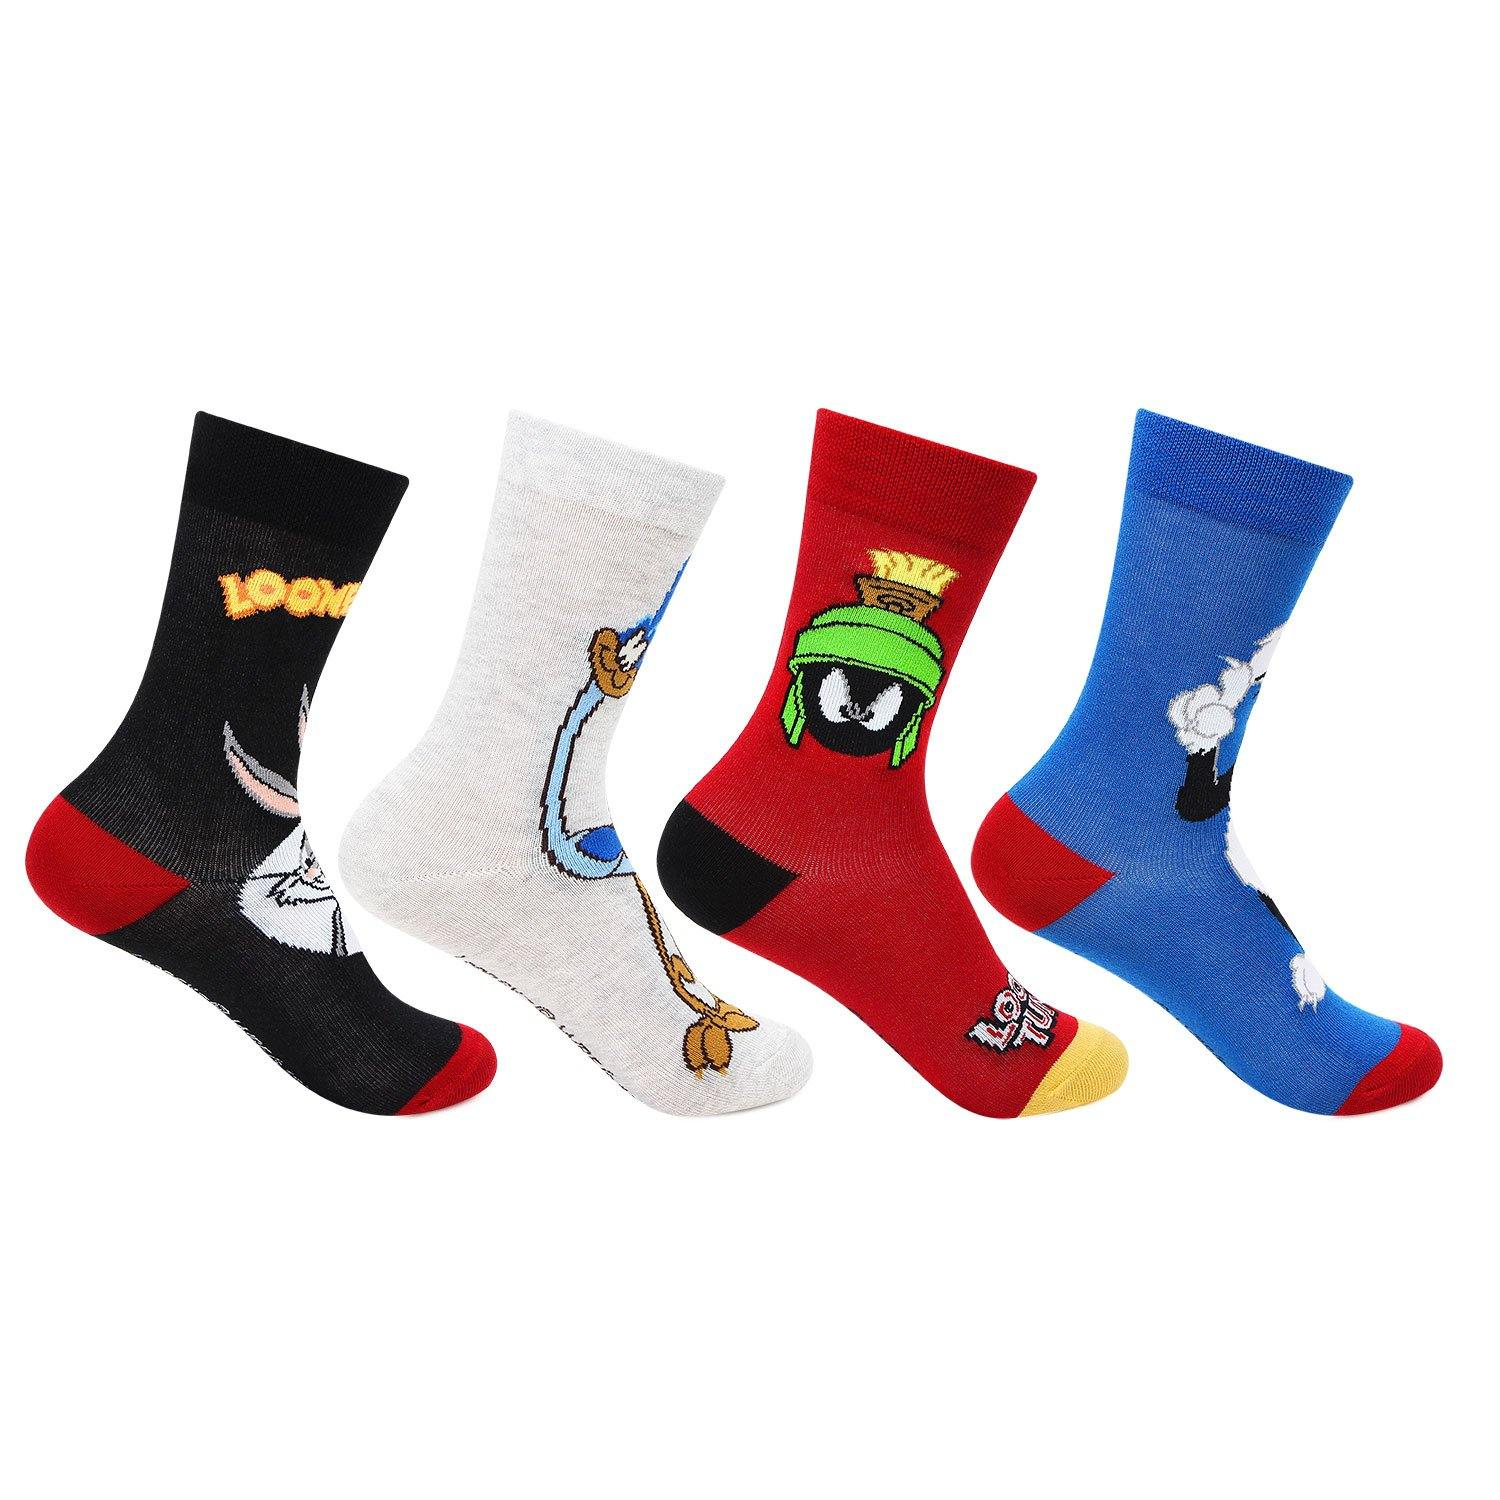 Loony Tunes Crew Socks for Kids- Pack of 4